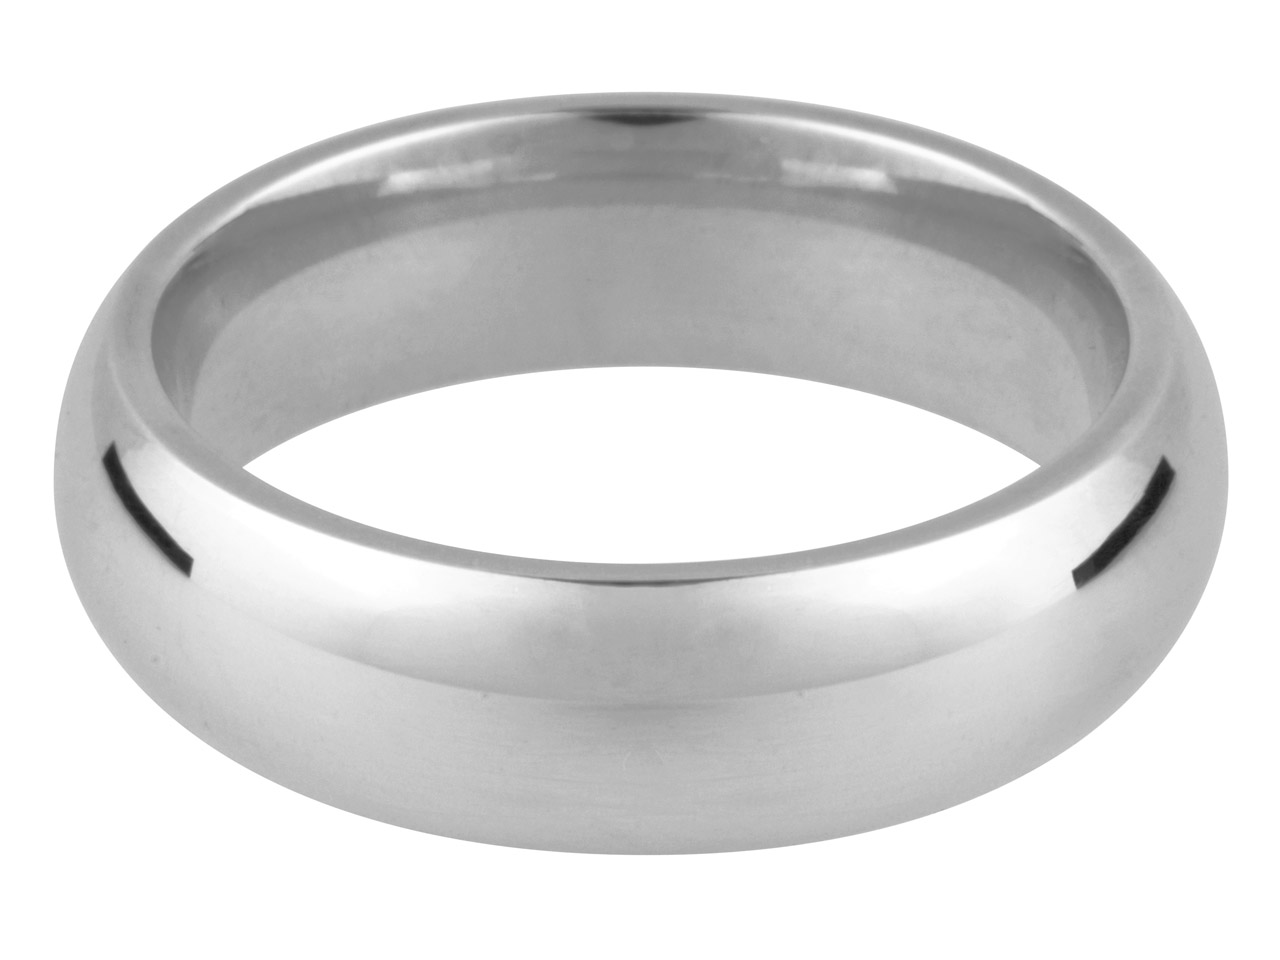 Palladium 500 Court Wedding Ring   4.0mm K 4.3gms Medium Weight       Hallmarked Wall Thickness 1.99mm